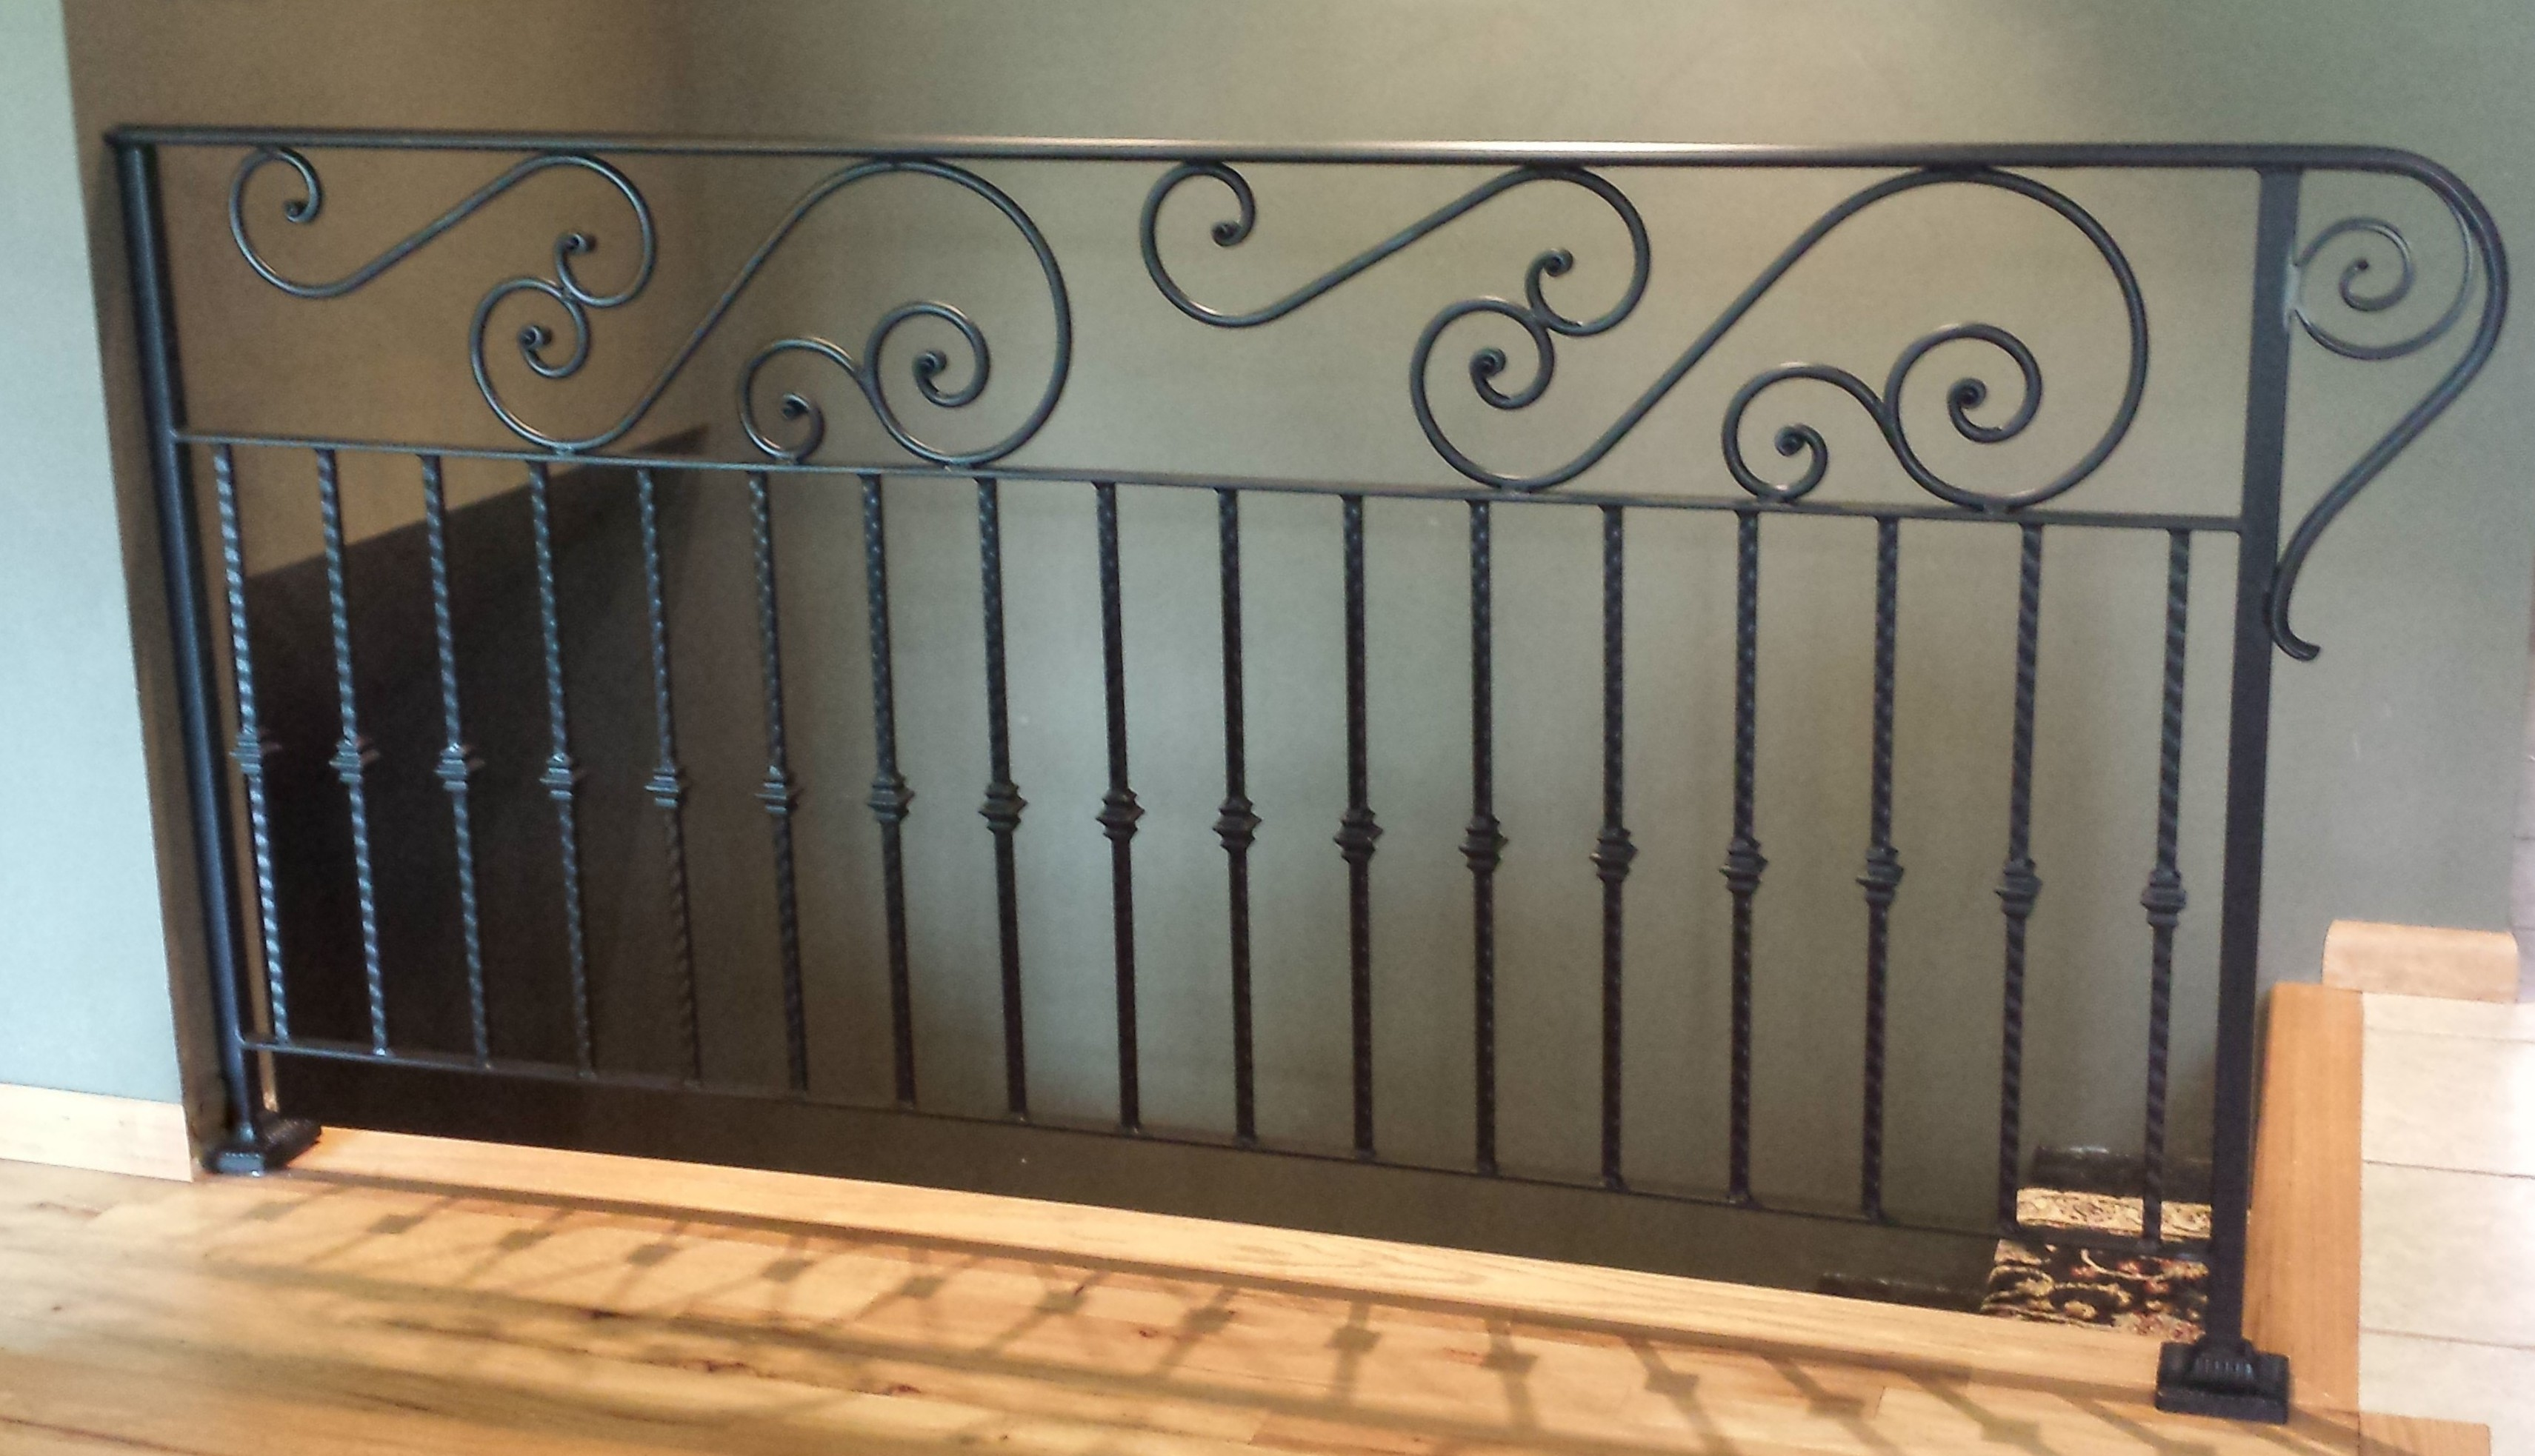 king-decorative-railing-2.jpg